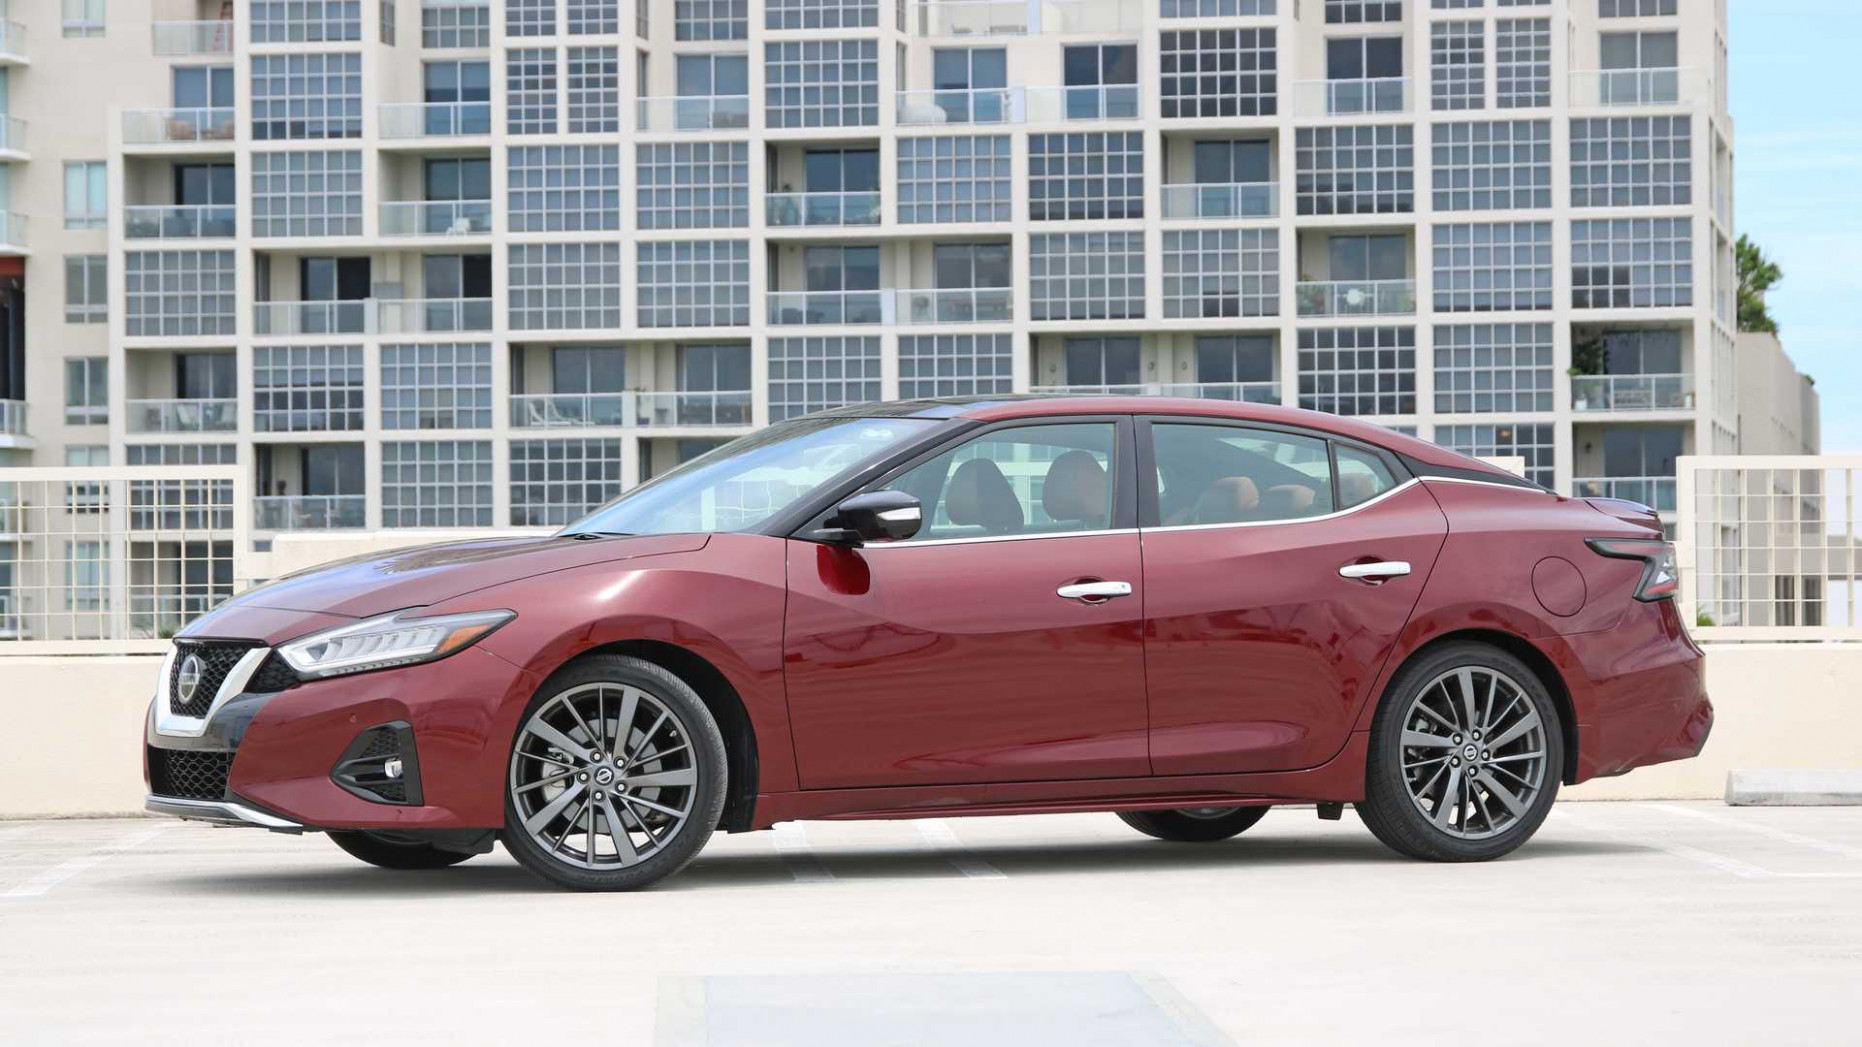 Picture When Does The 2022 Nissan Maxima Come Out